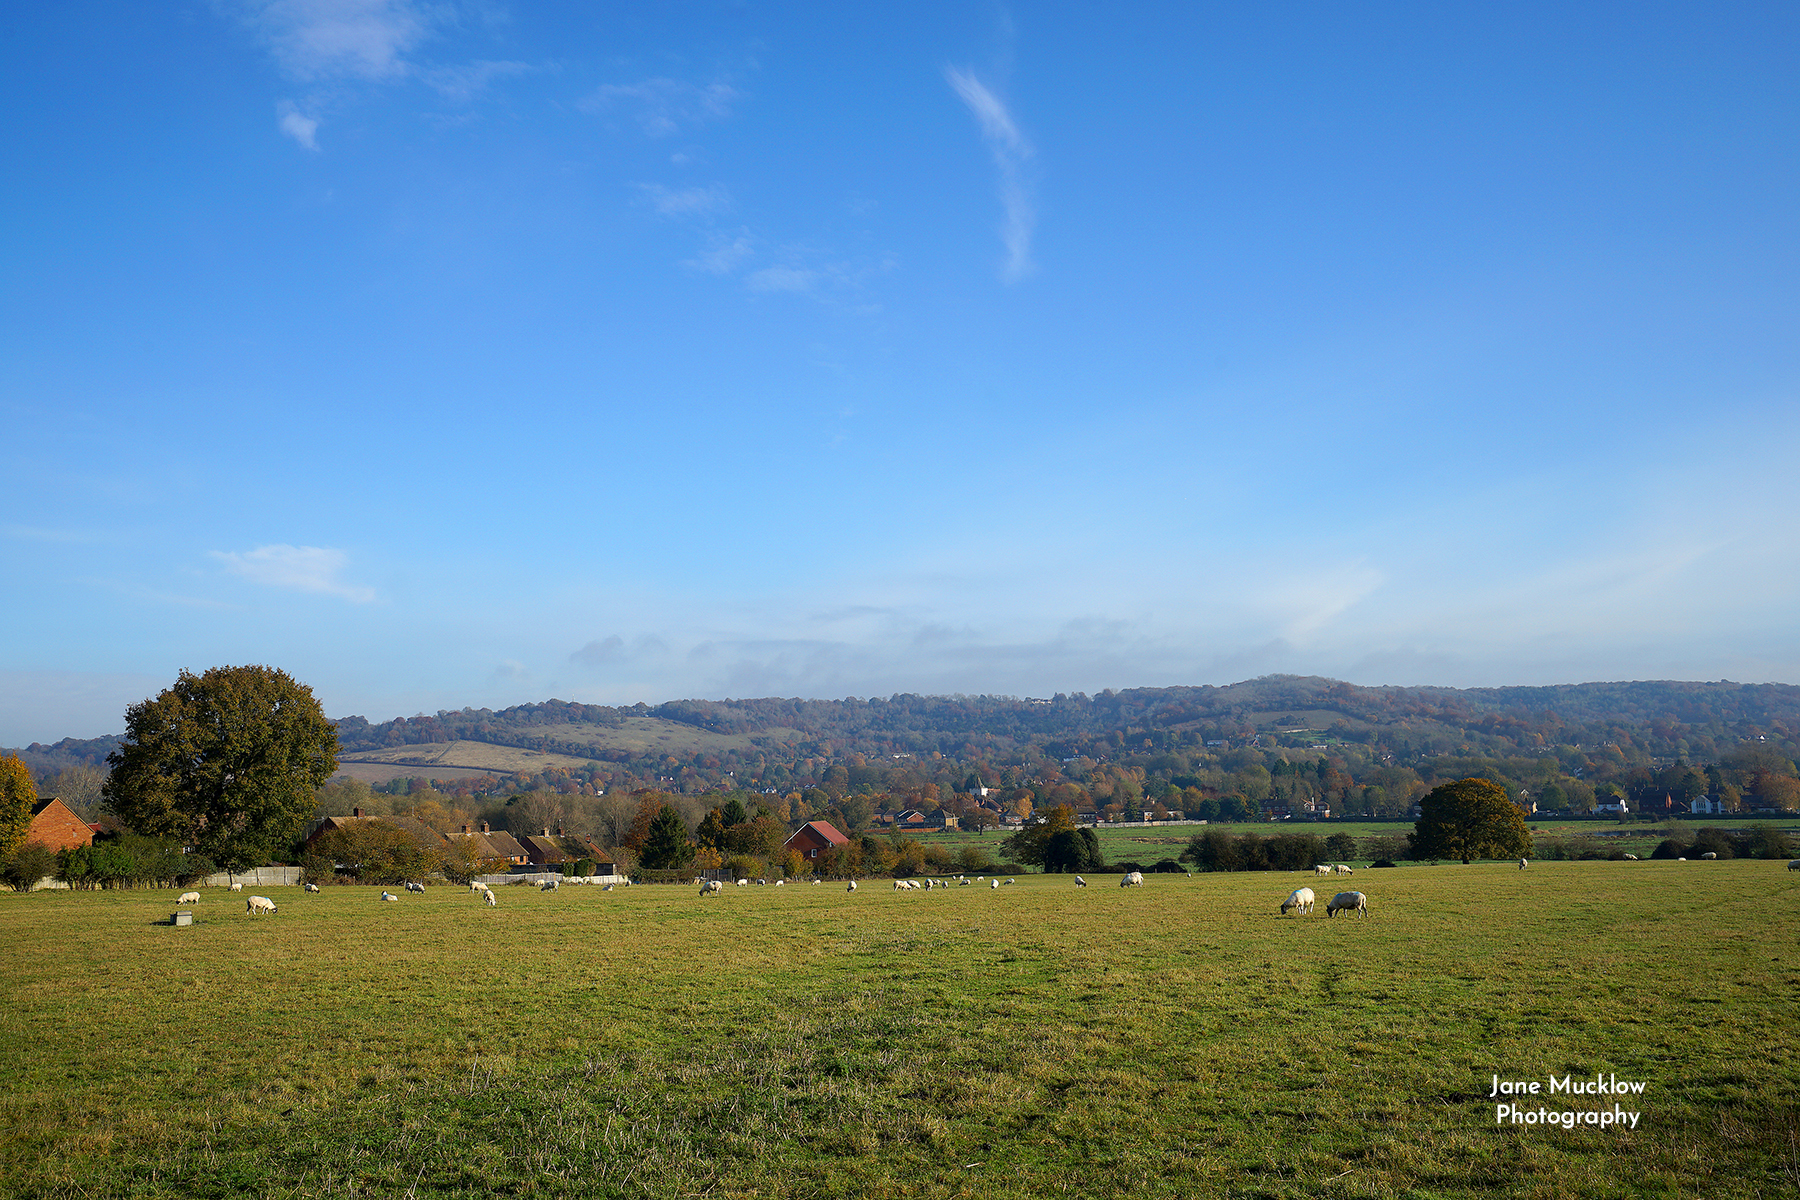 Photo of the view to Otford from Rye Lane fields, by Jane Mucklow